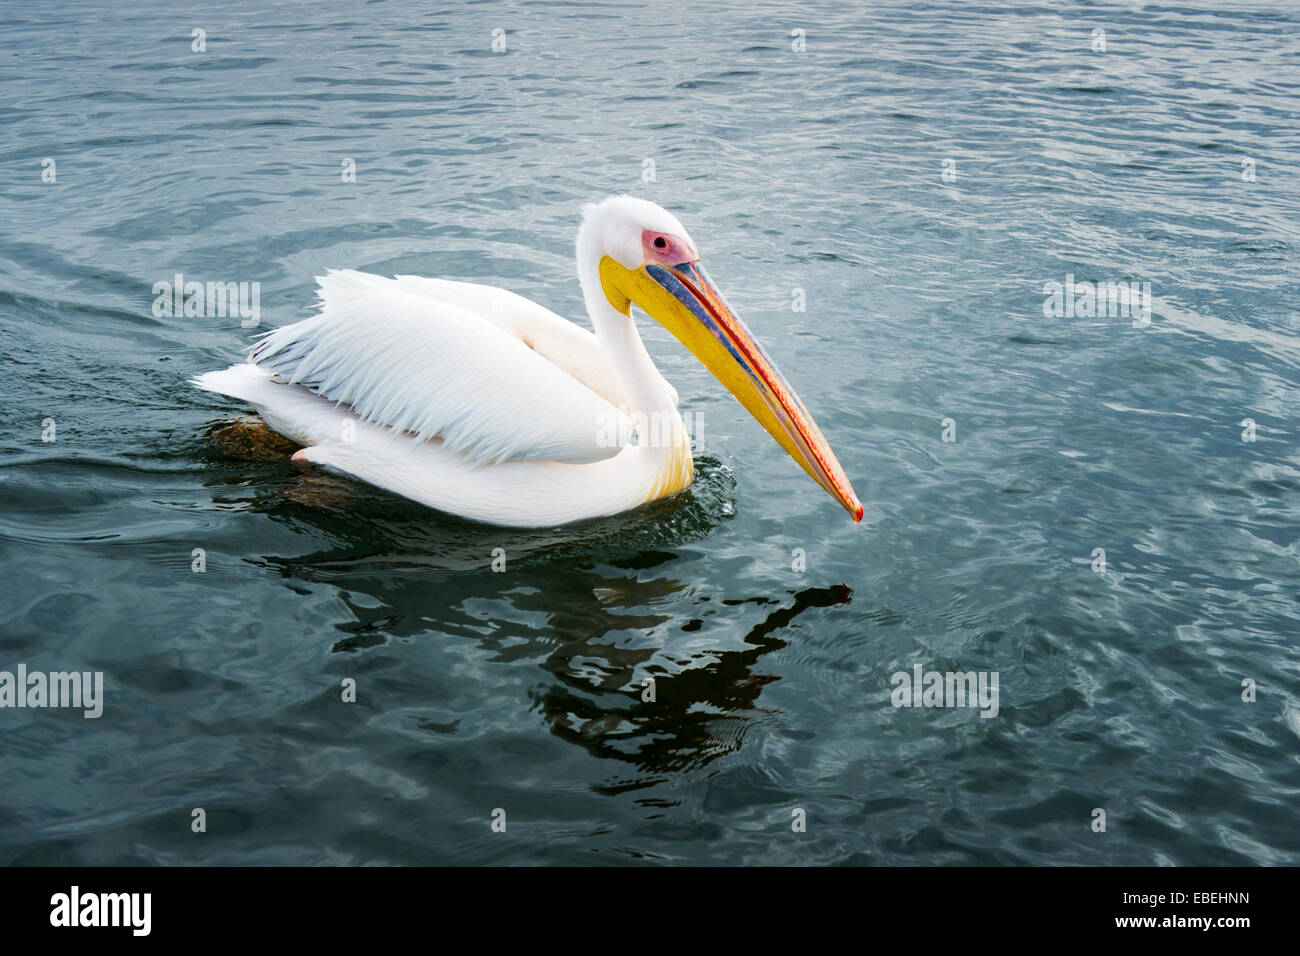 Great White Pelican (Pelecanus onocrotalus) swimming in water, Walvisbaai, Namibia. - Stock Image